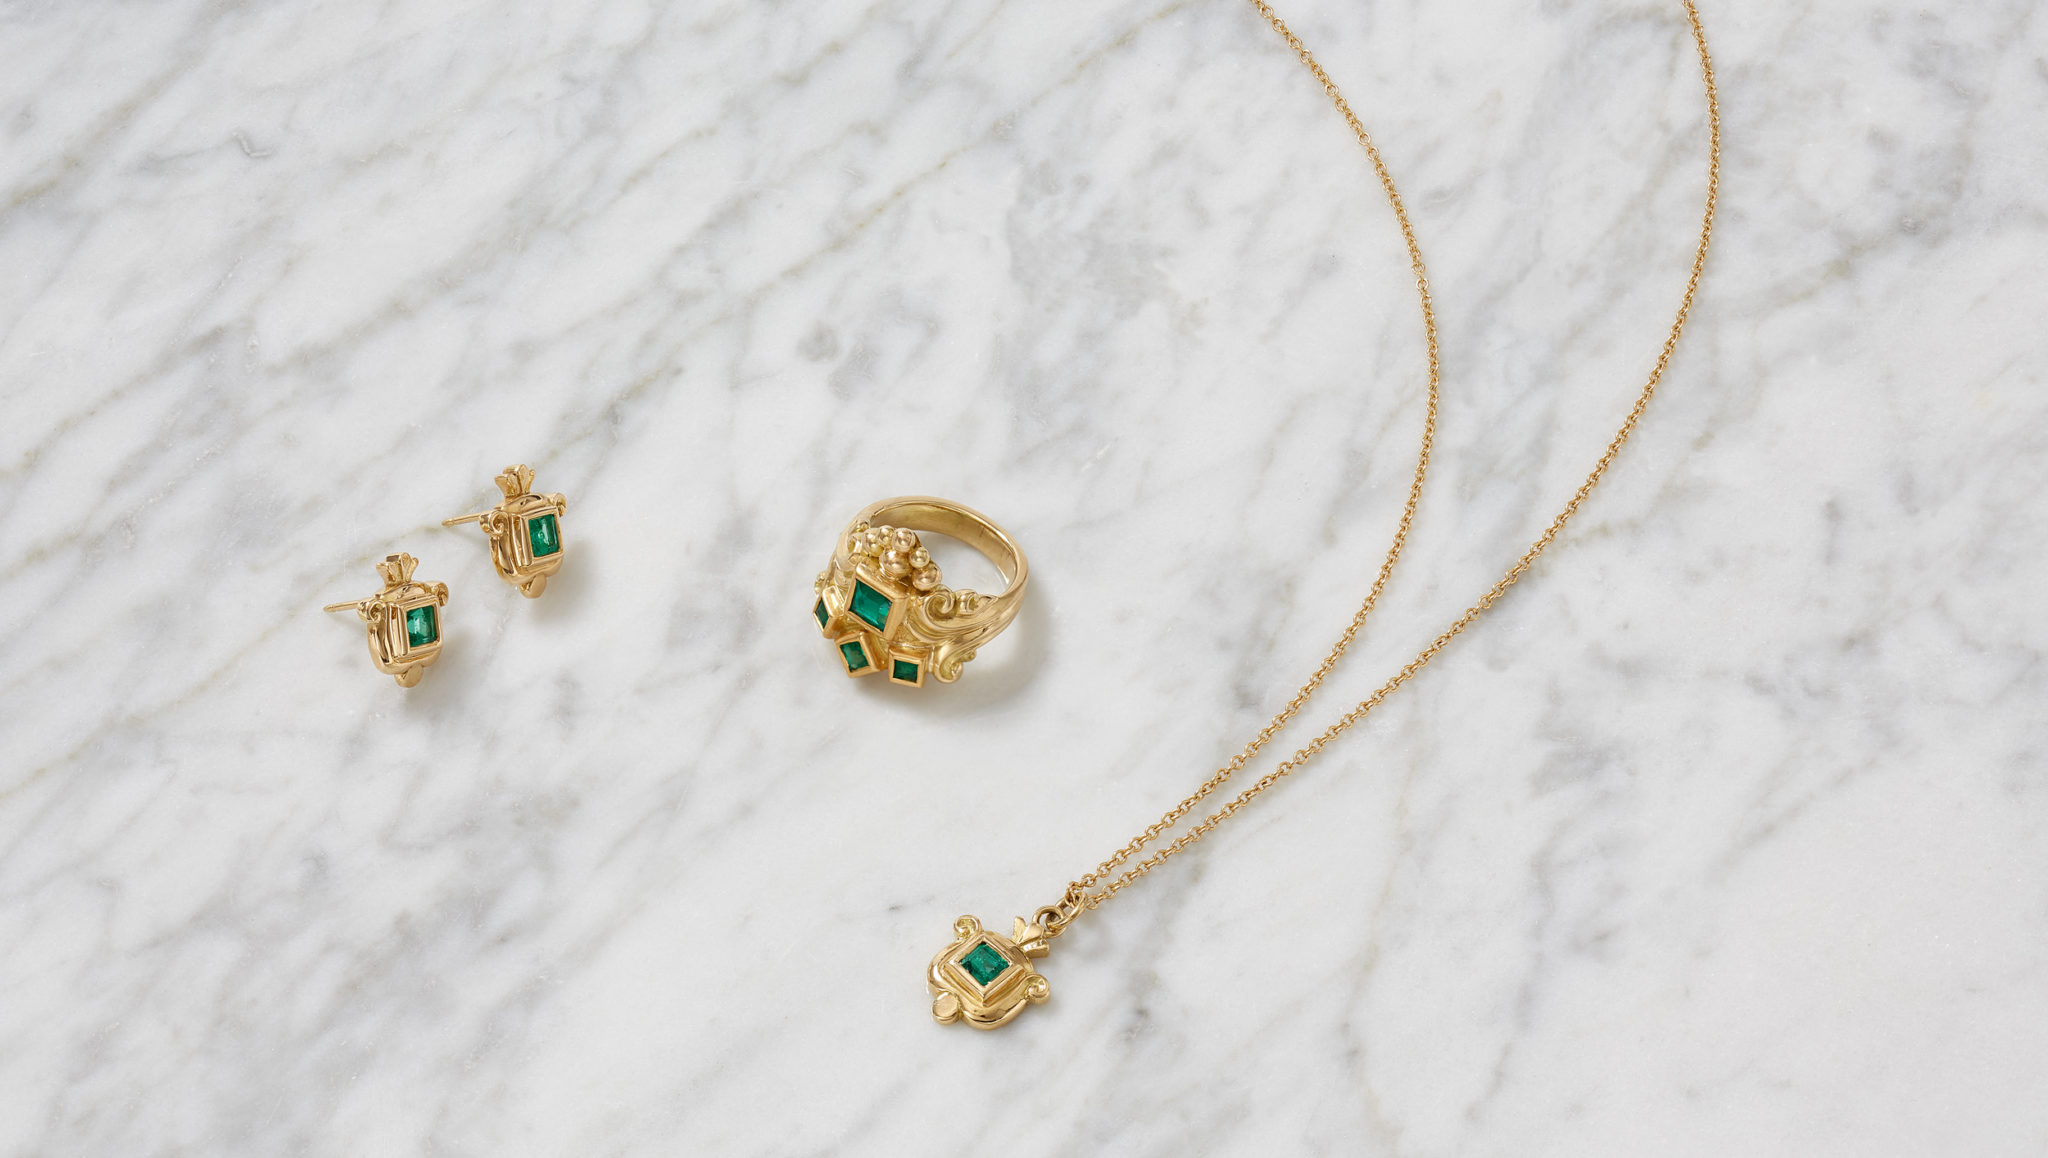 marketing still life photograph of gold and emerald jewelry on a marble background